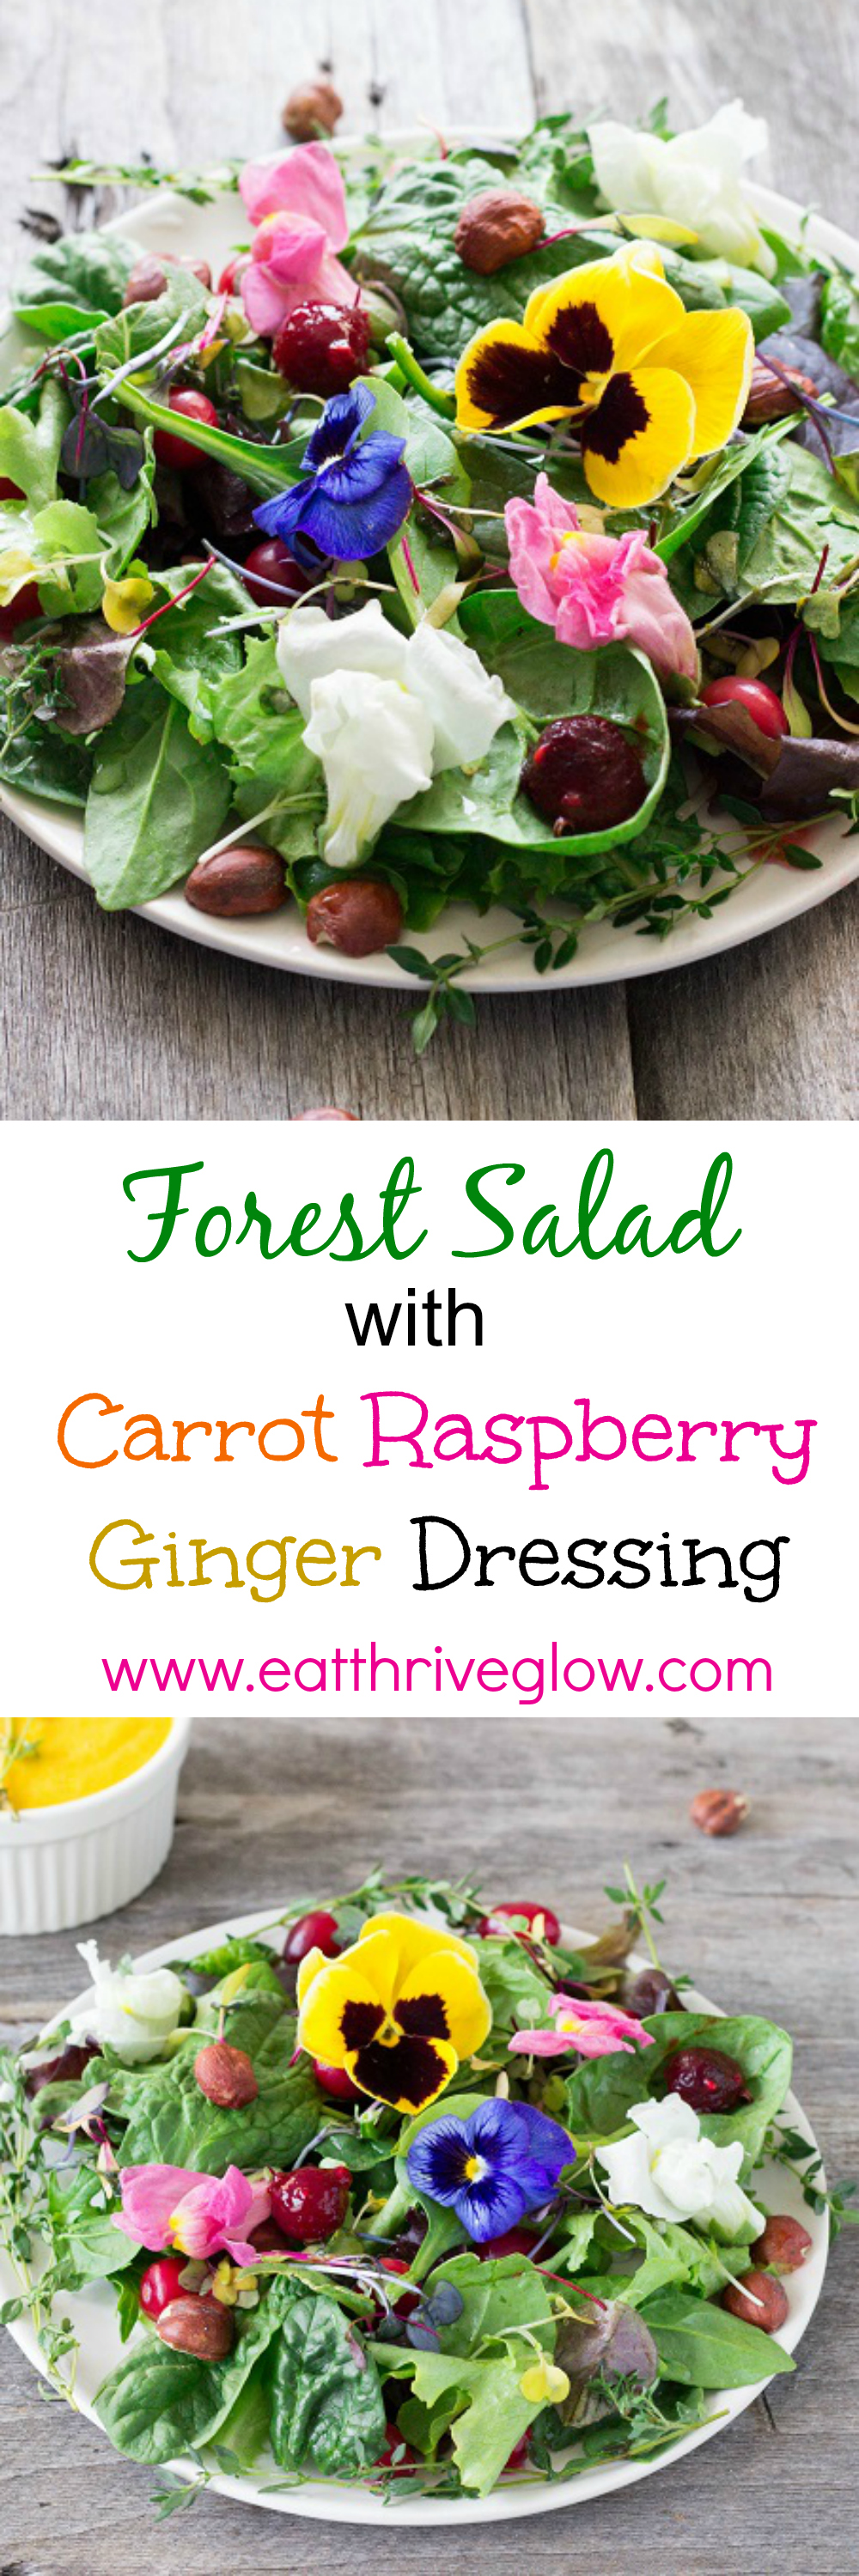 Forest Salad with Carrot Raspberry Ginger Dressing - Eat Thrive Glow